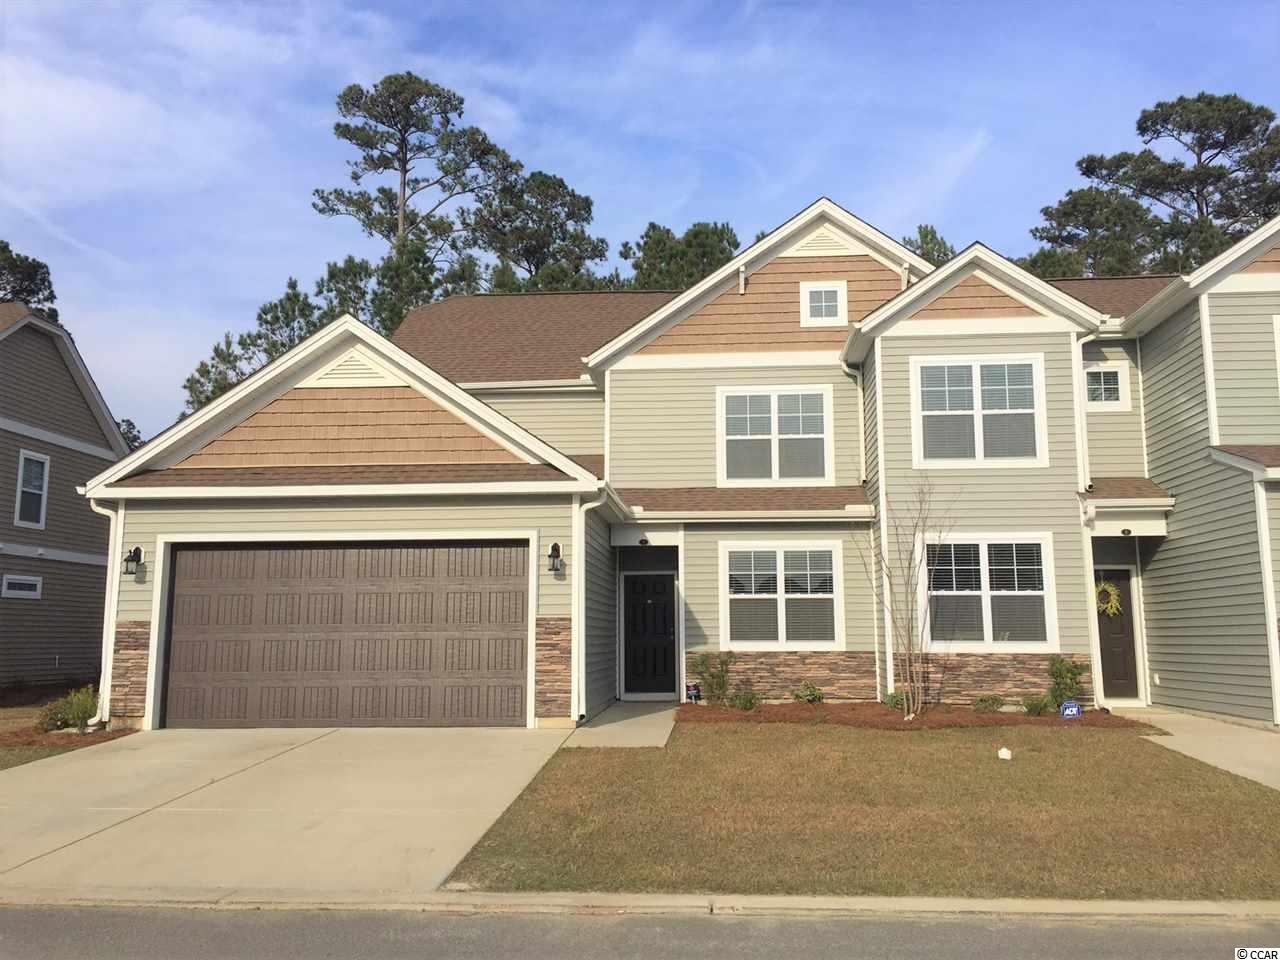 108 A Machrie Loop A, Myrtle Beach, South Carolina